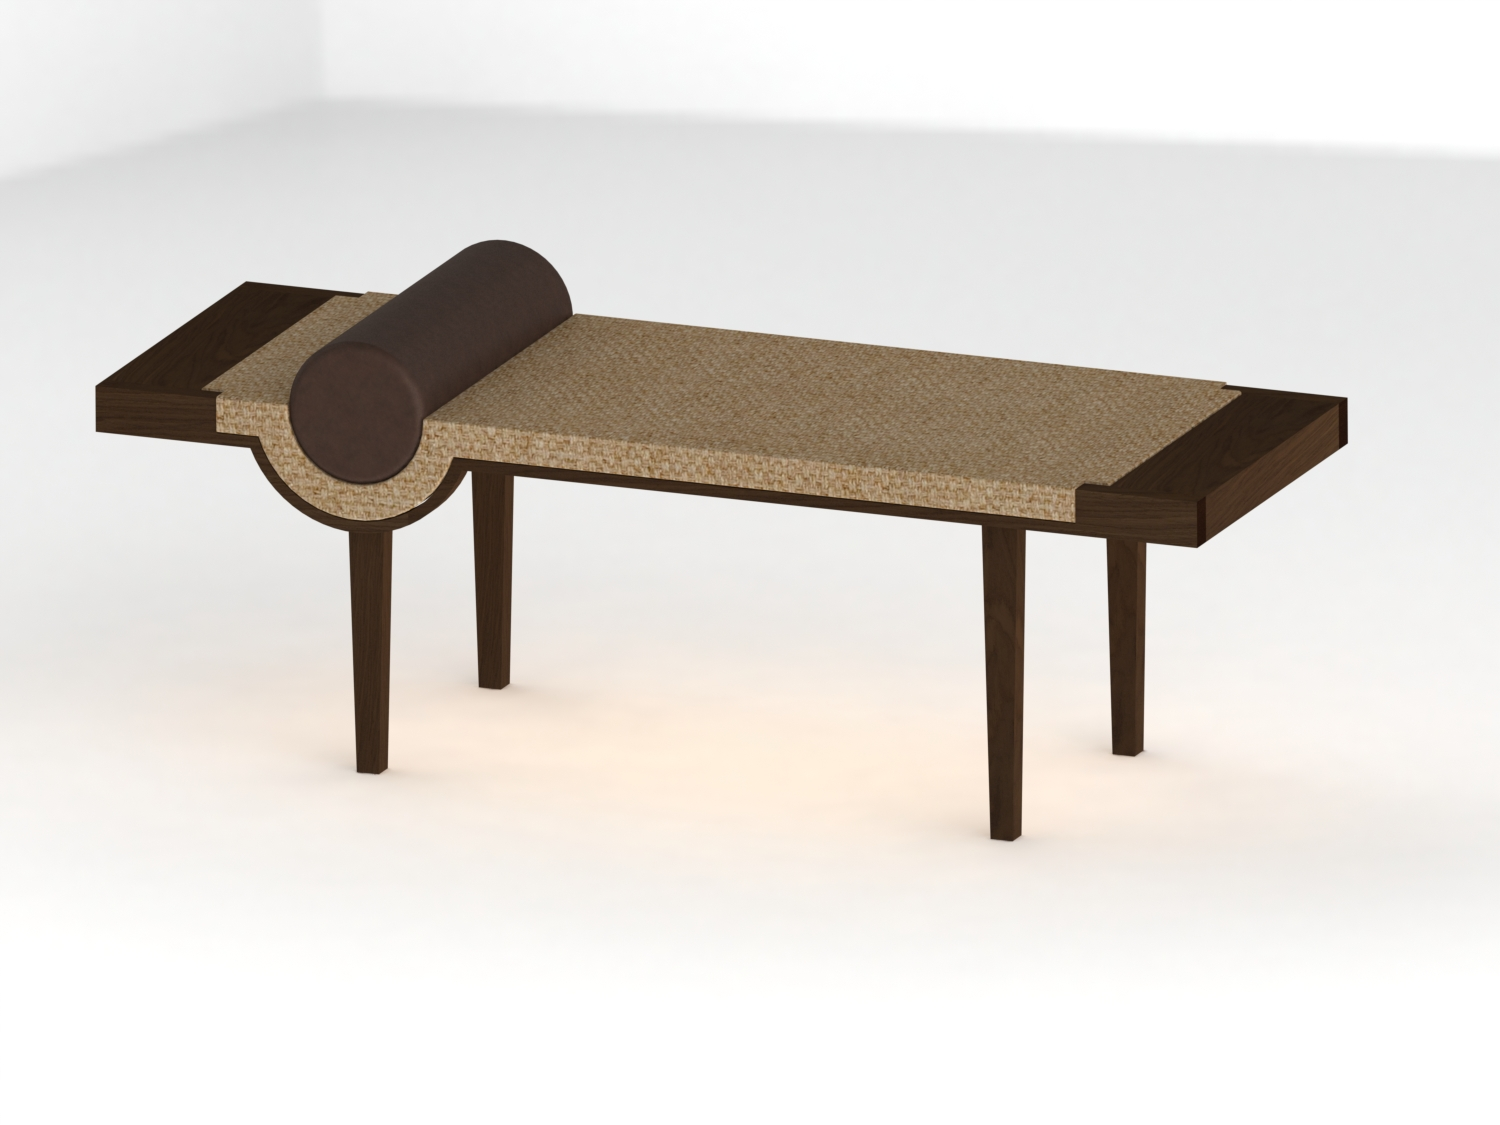 playa_bench_angle_walnut.JPG